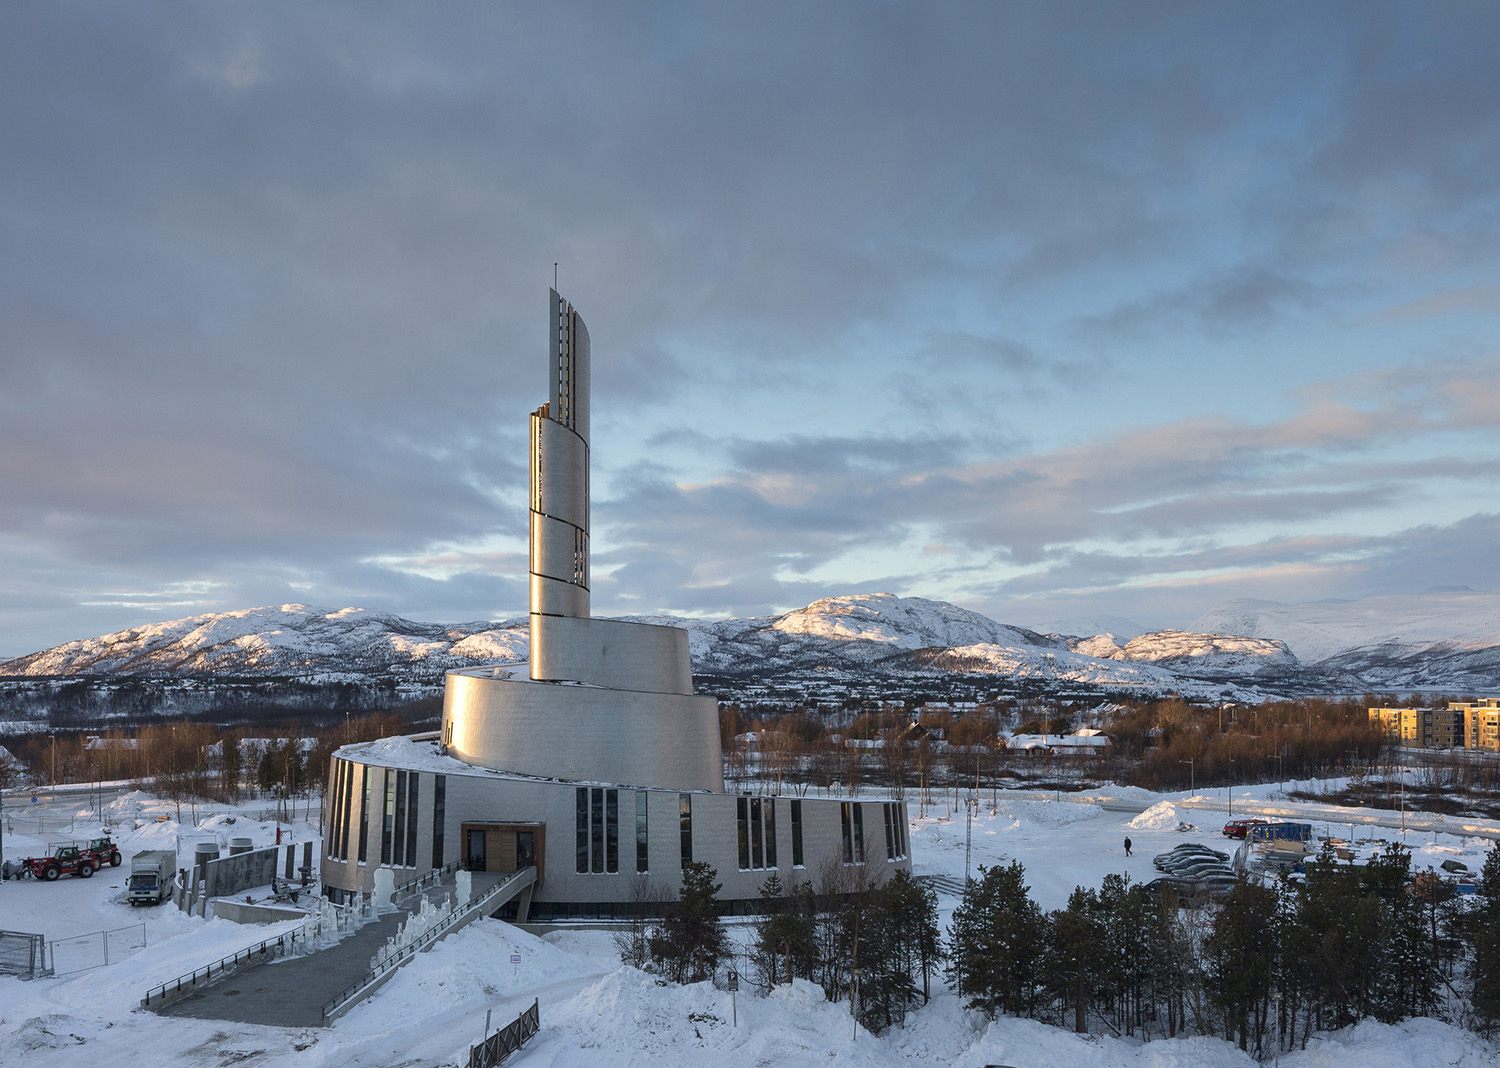 The New Cathedral of the Northern Light schmidt hammer lassen archittects Photo 004